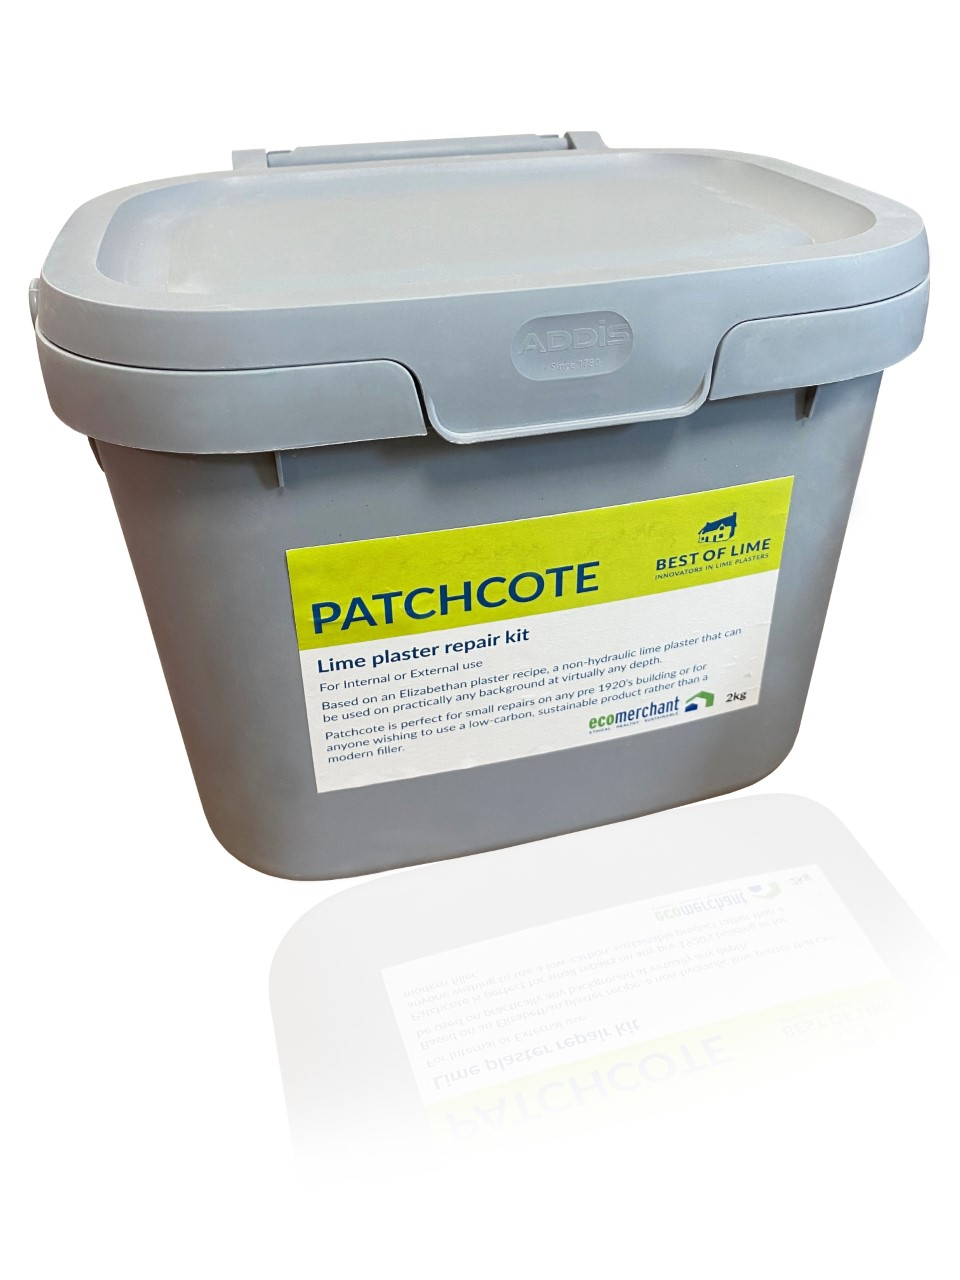 Patchcote lime plaster repair kit product packaging